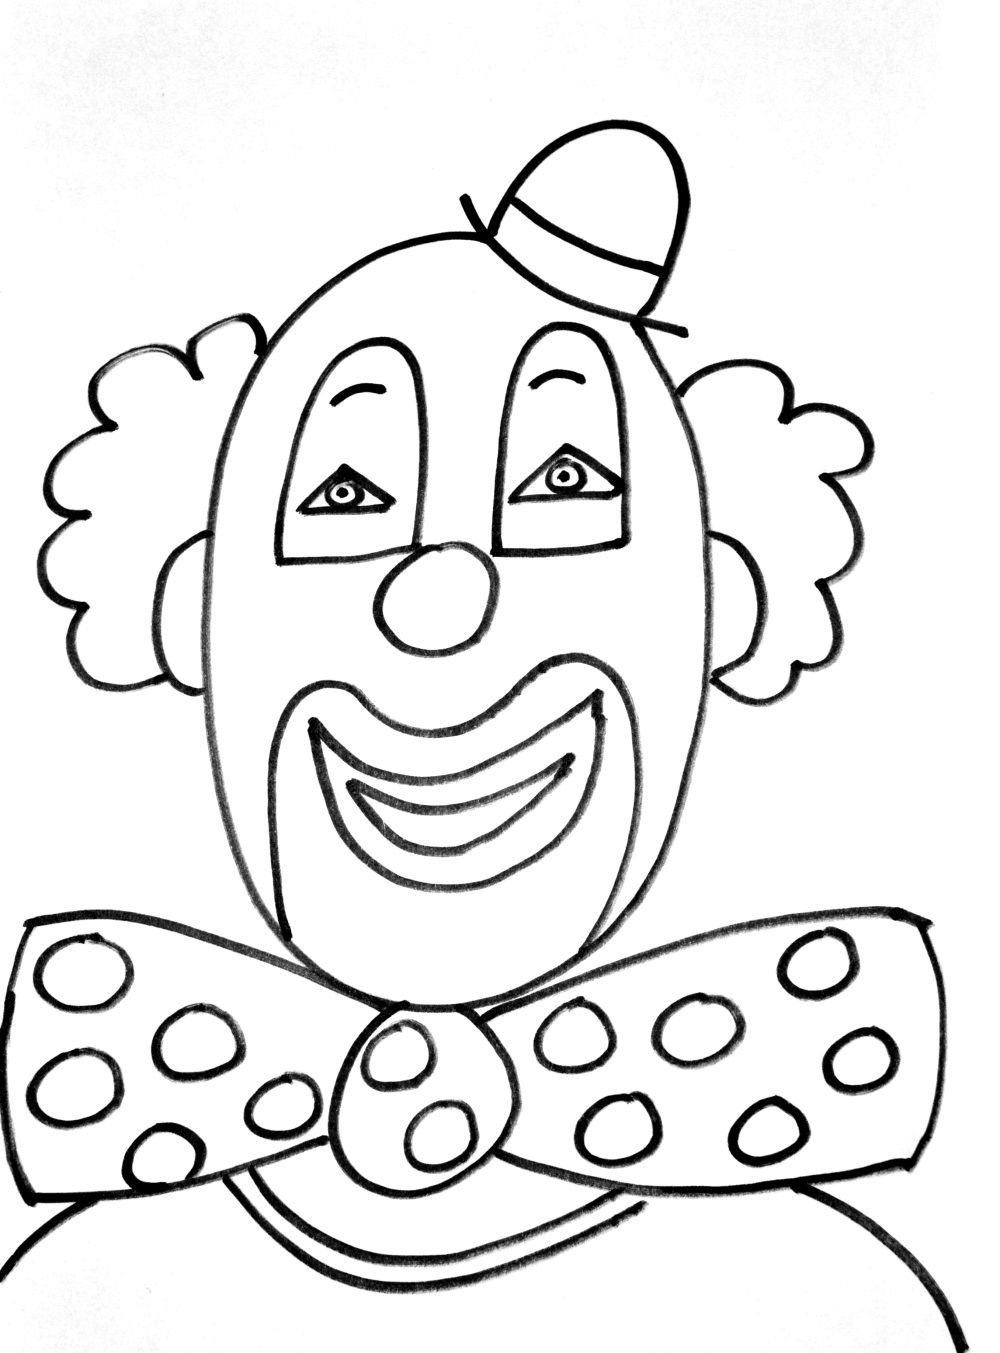 easy clown coloring pages coloring page toy clown easy coloring pages clown